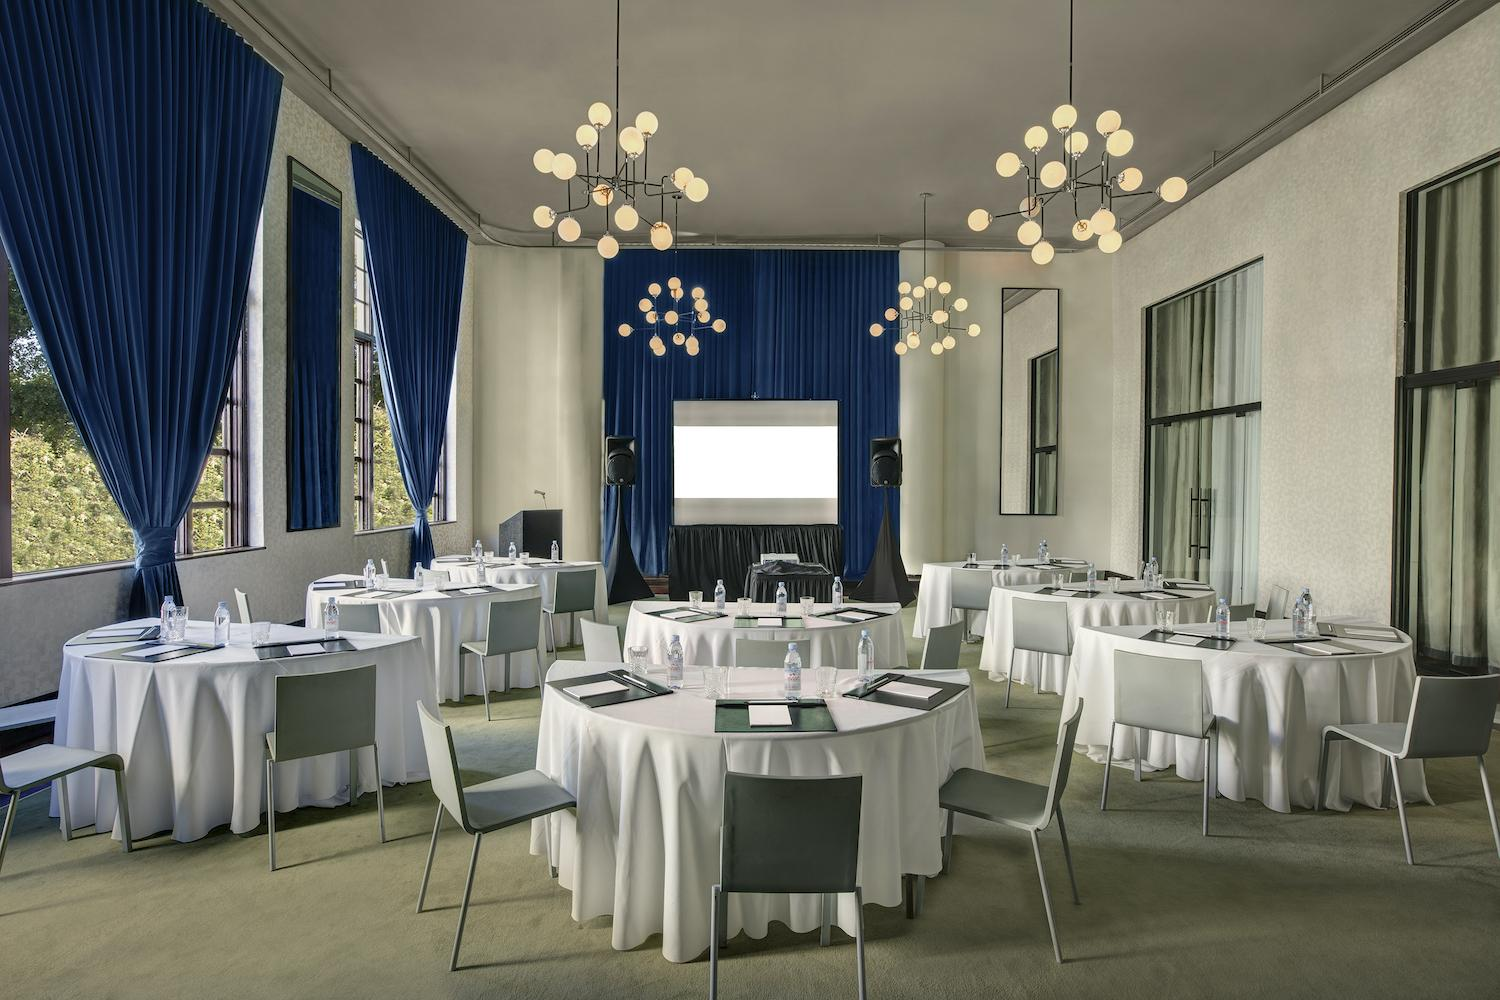 doheny-room-meetings-events